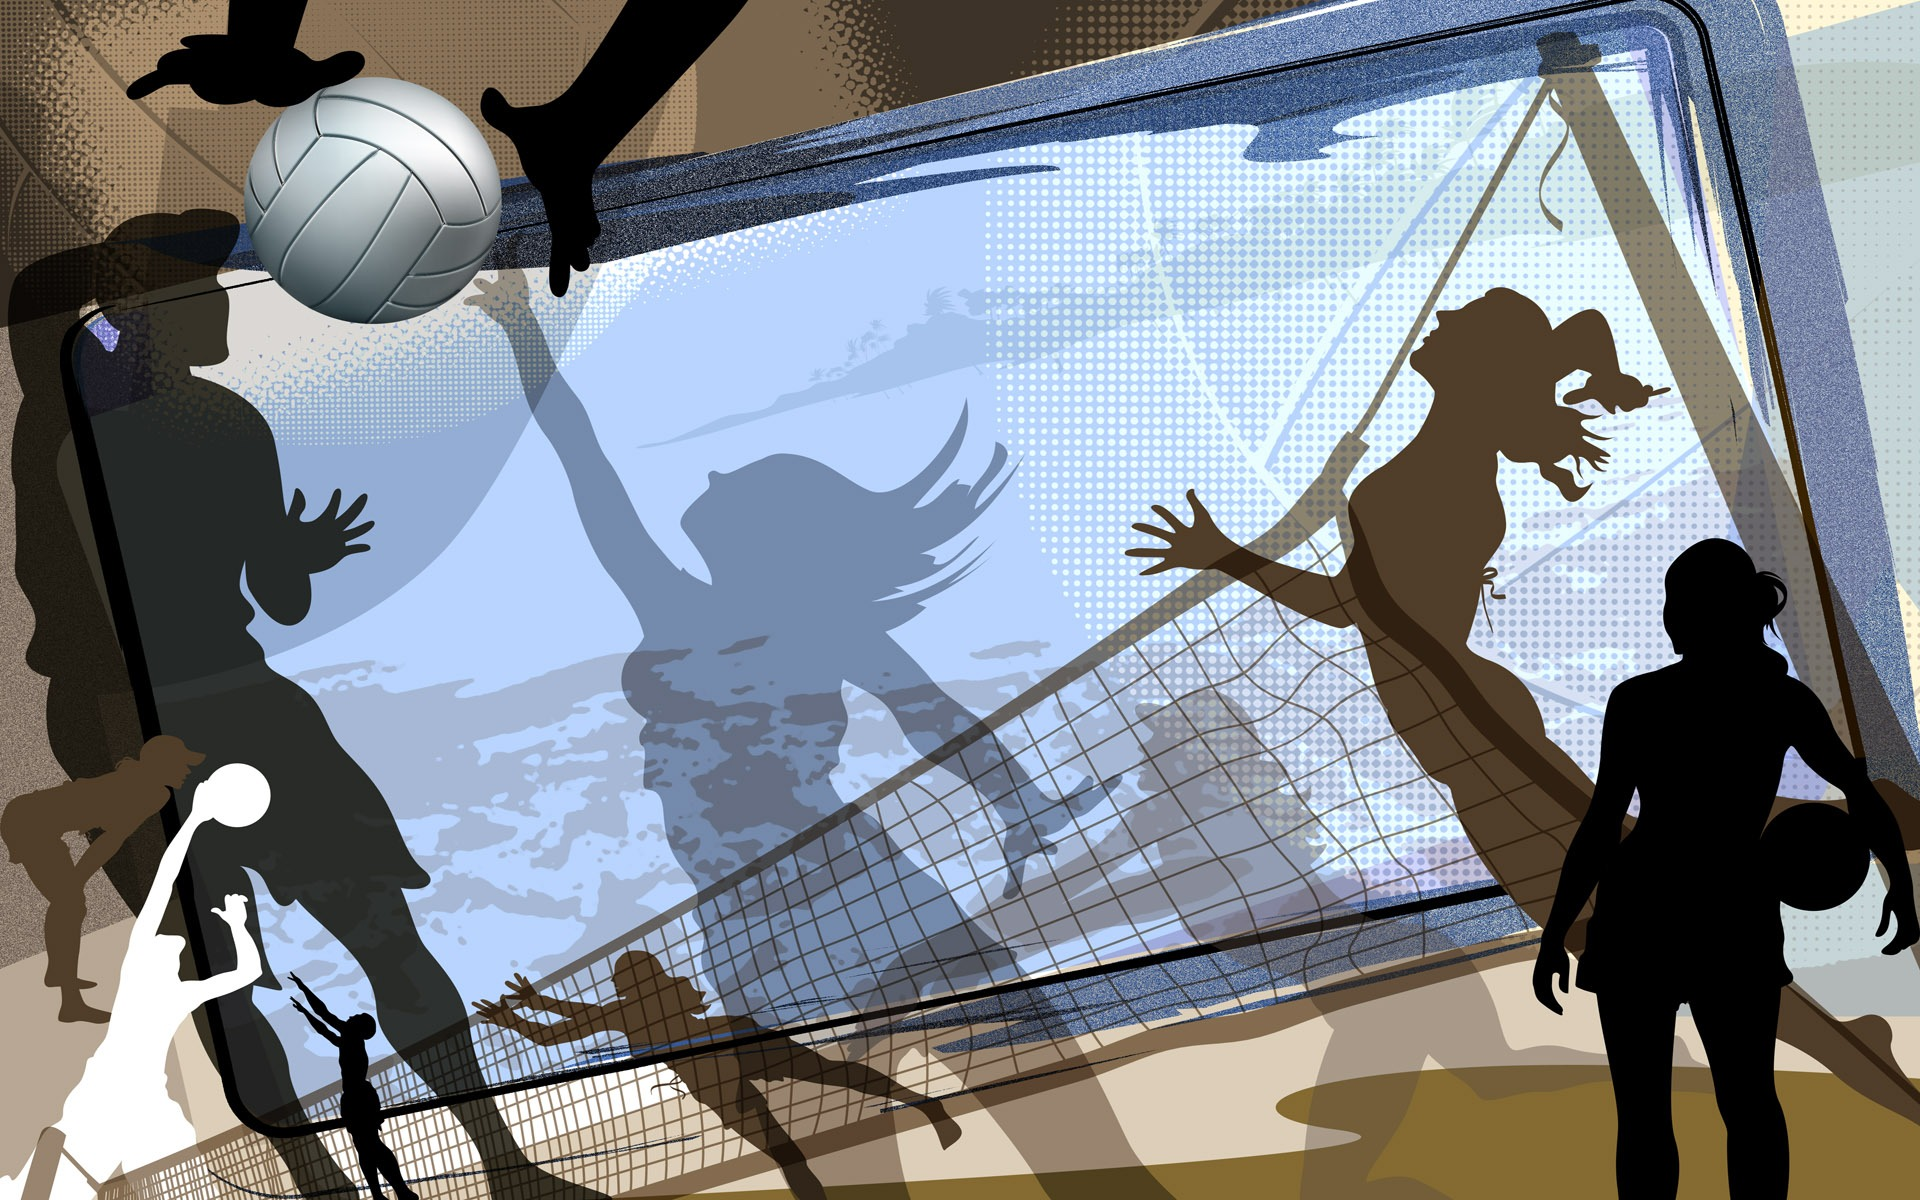 Abstract Design Of A Beach Volleyball Player Vector Image: Free Volleyball Wallpapers And Backgrounds